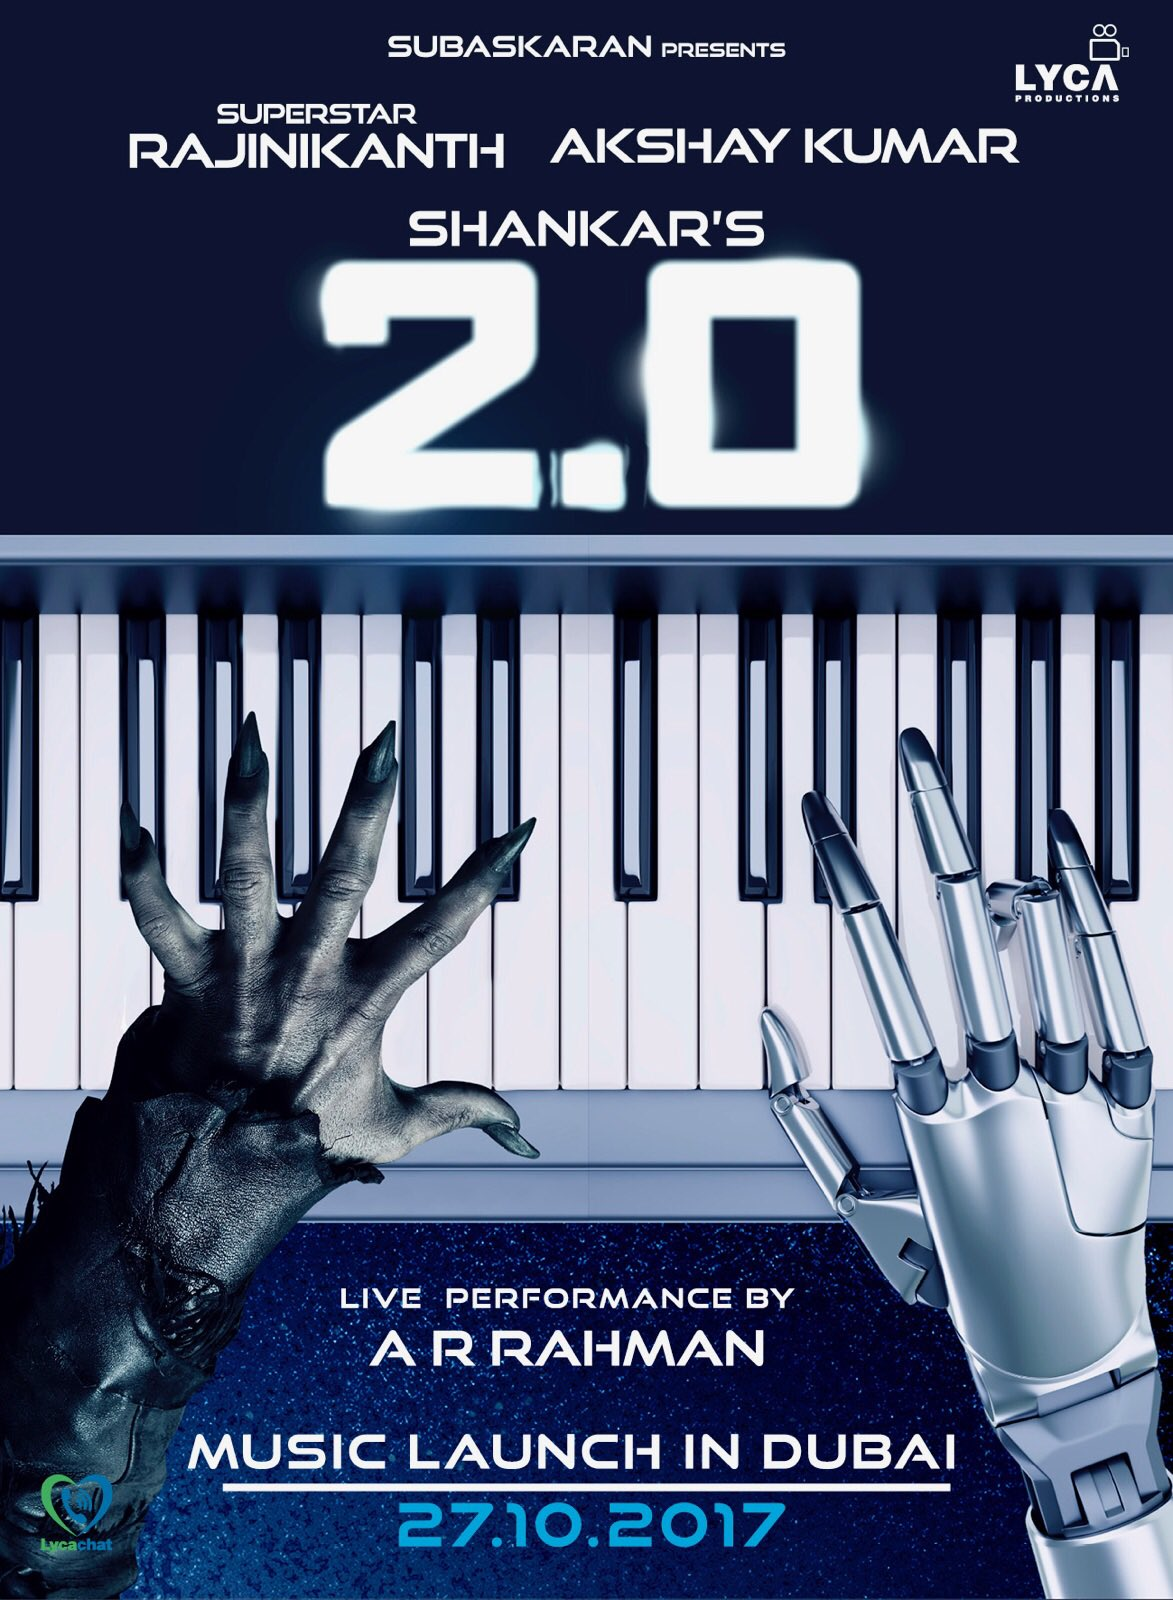 Superstar Rajinikanth's 2.0